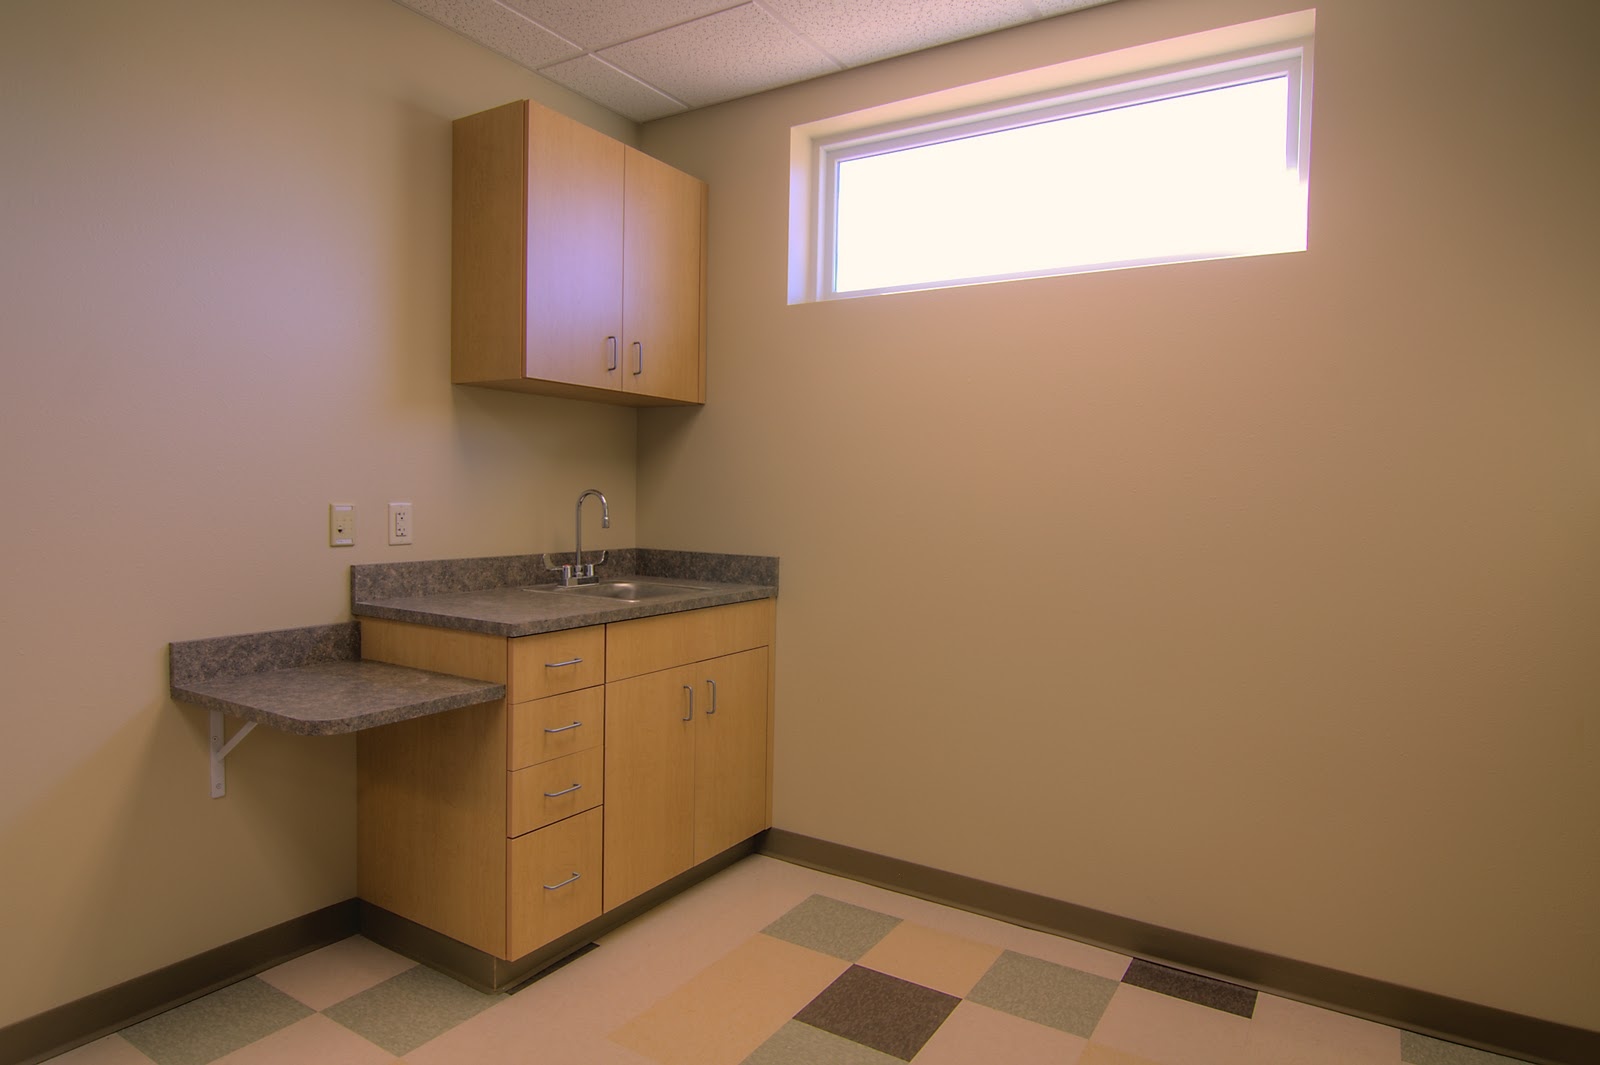 medical office exam room cabinets. medical exam room cabinets with